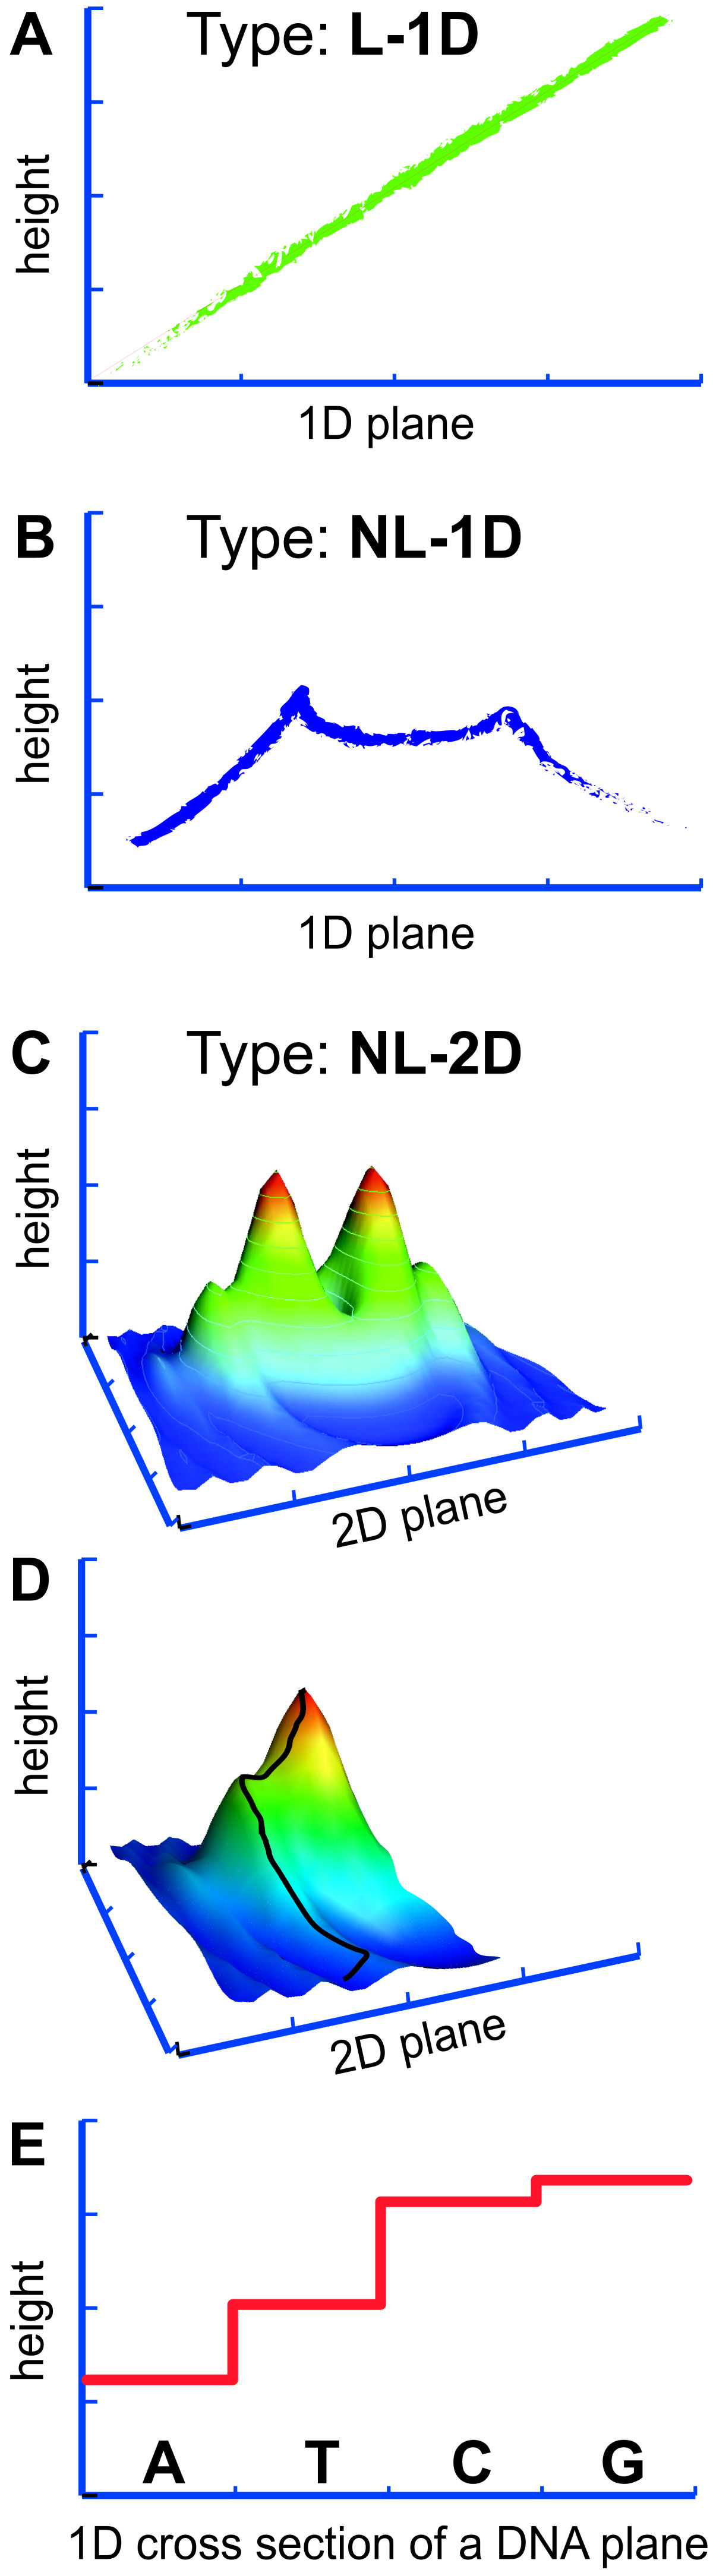 http://static-content.springer.com/image/art%3A10.1186%2F1752-0509-3-27/MediaObjects/12918_2008_Article_295_Fig2_HTML.jpg